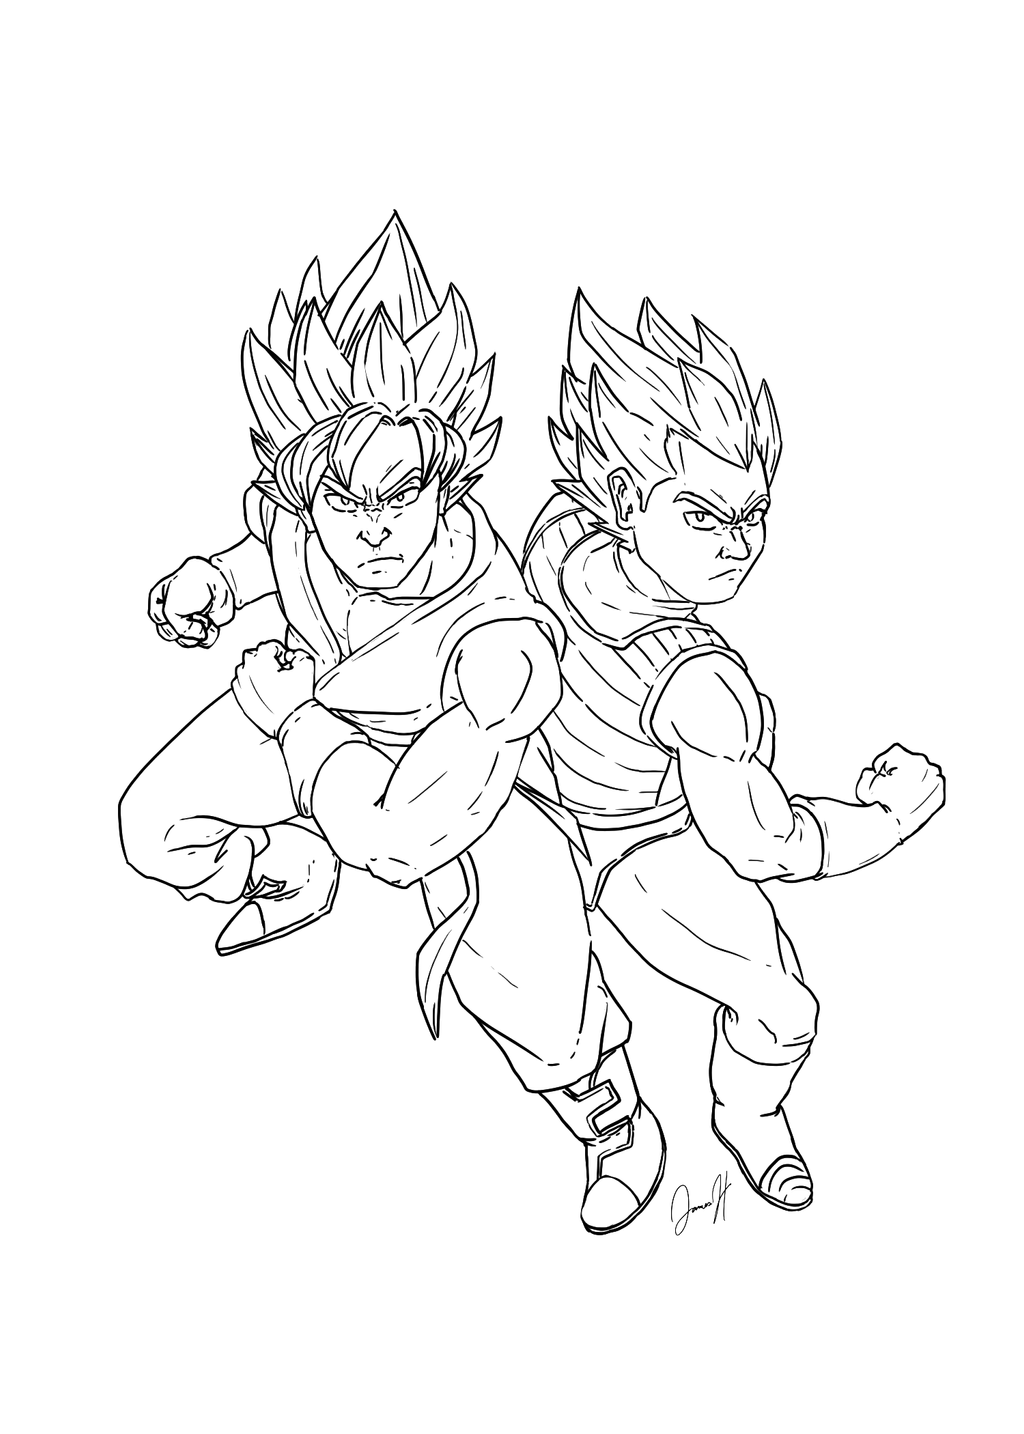 Ssgss goku and vegeta lineart by blueast on deviantart for Goku and vegeta coloring pages